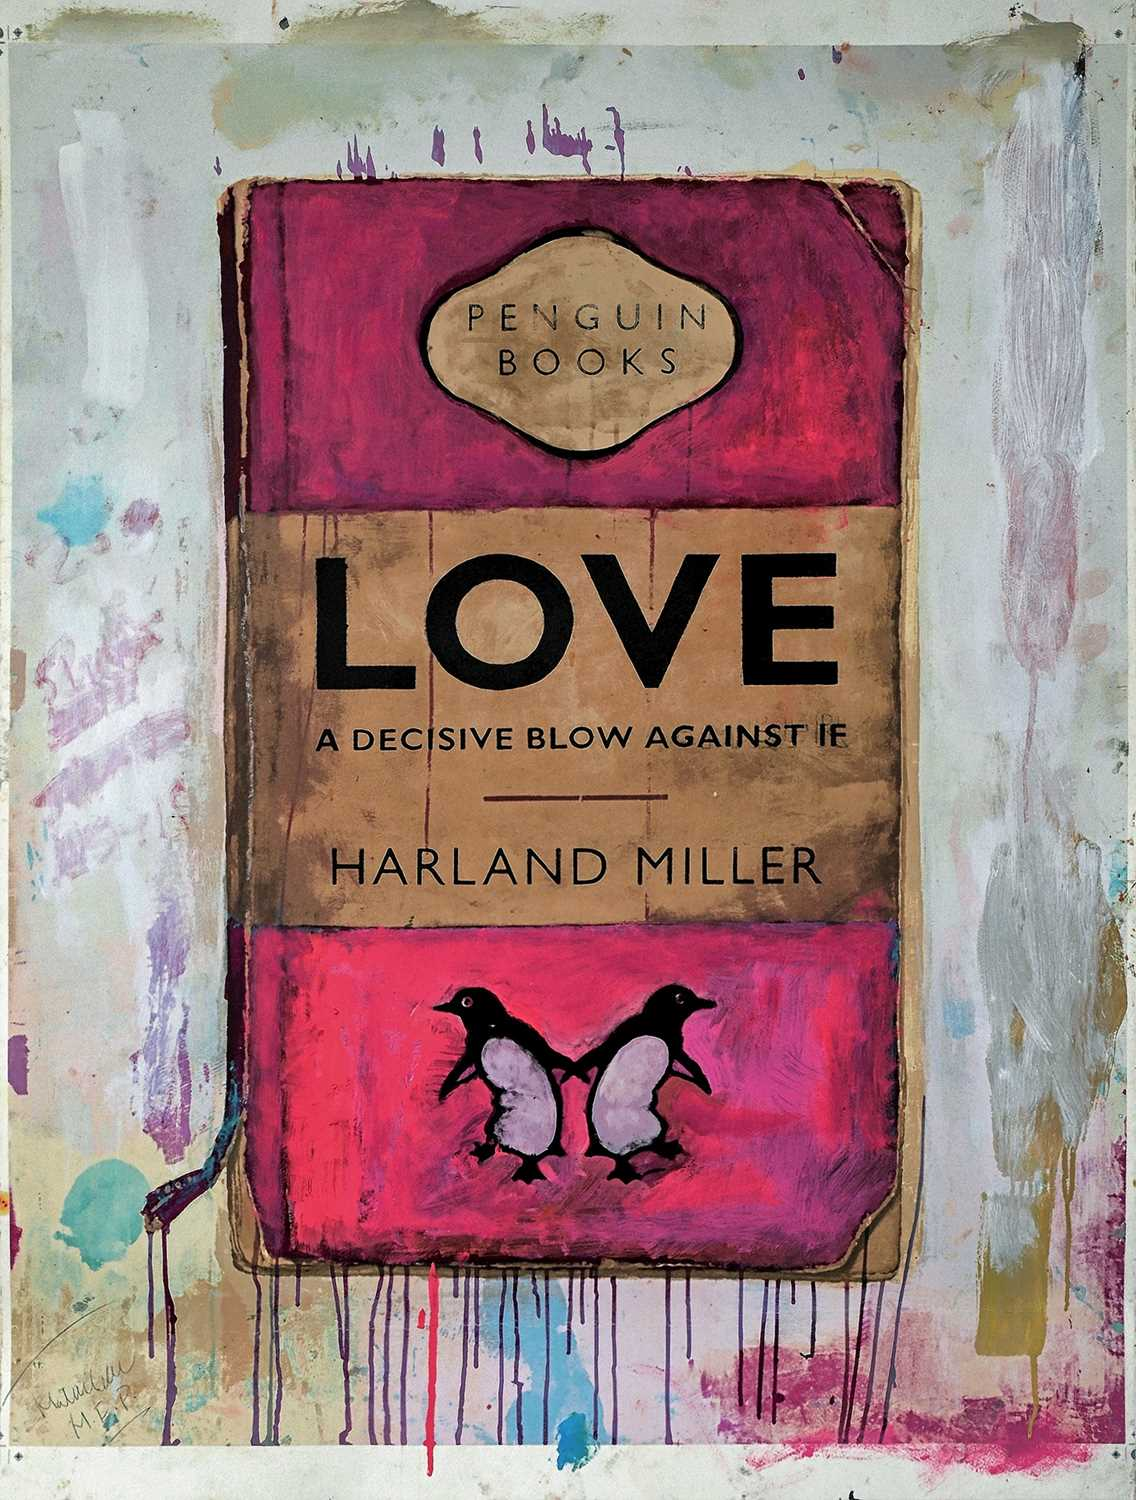 145 - Harland Miller (British 1964-), 'Love, A Decisive Blow Against If', 2018